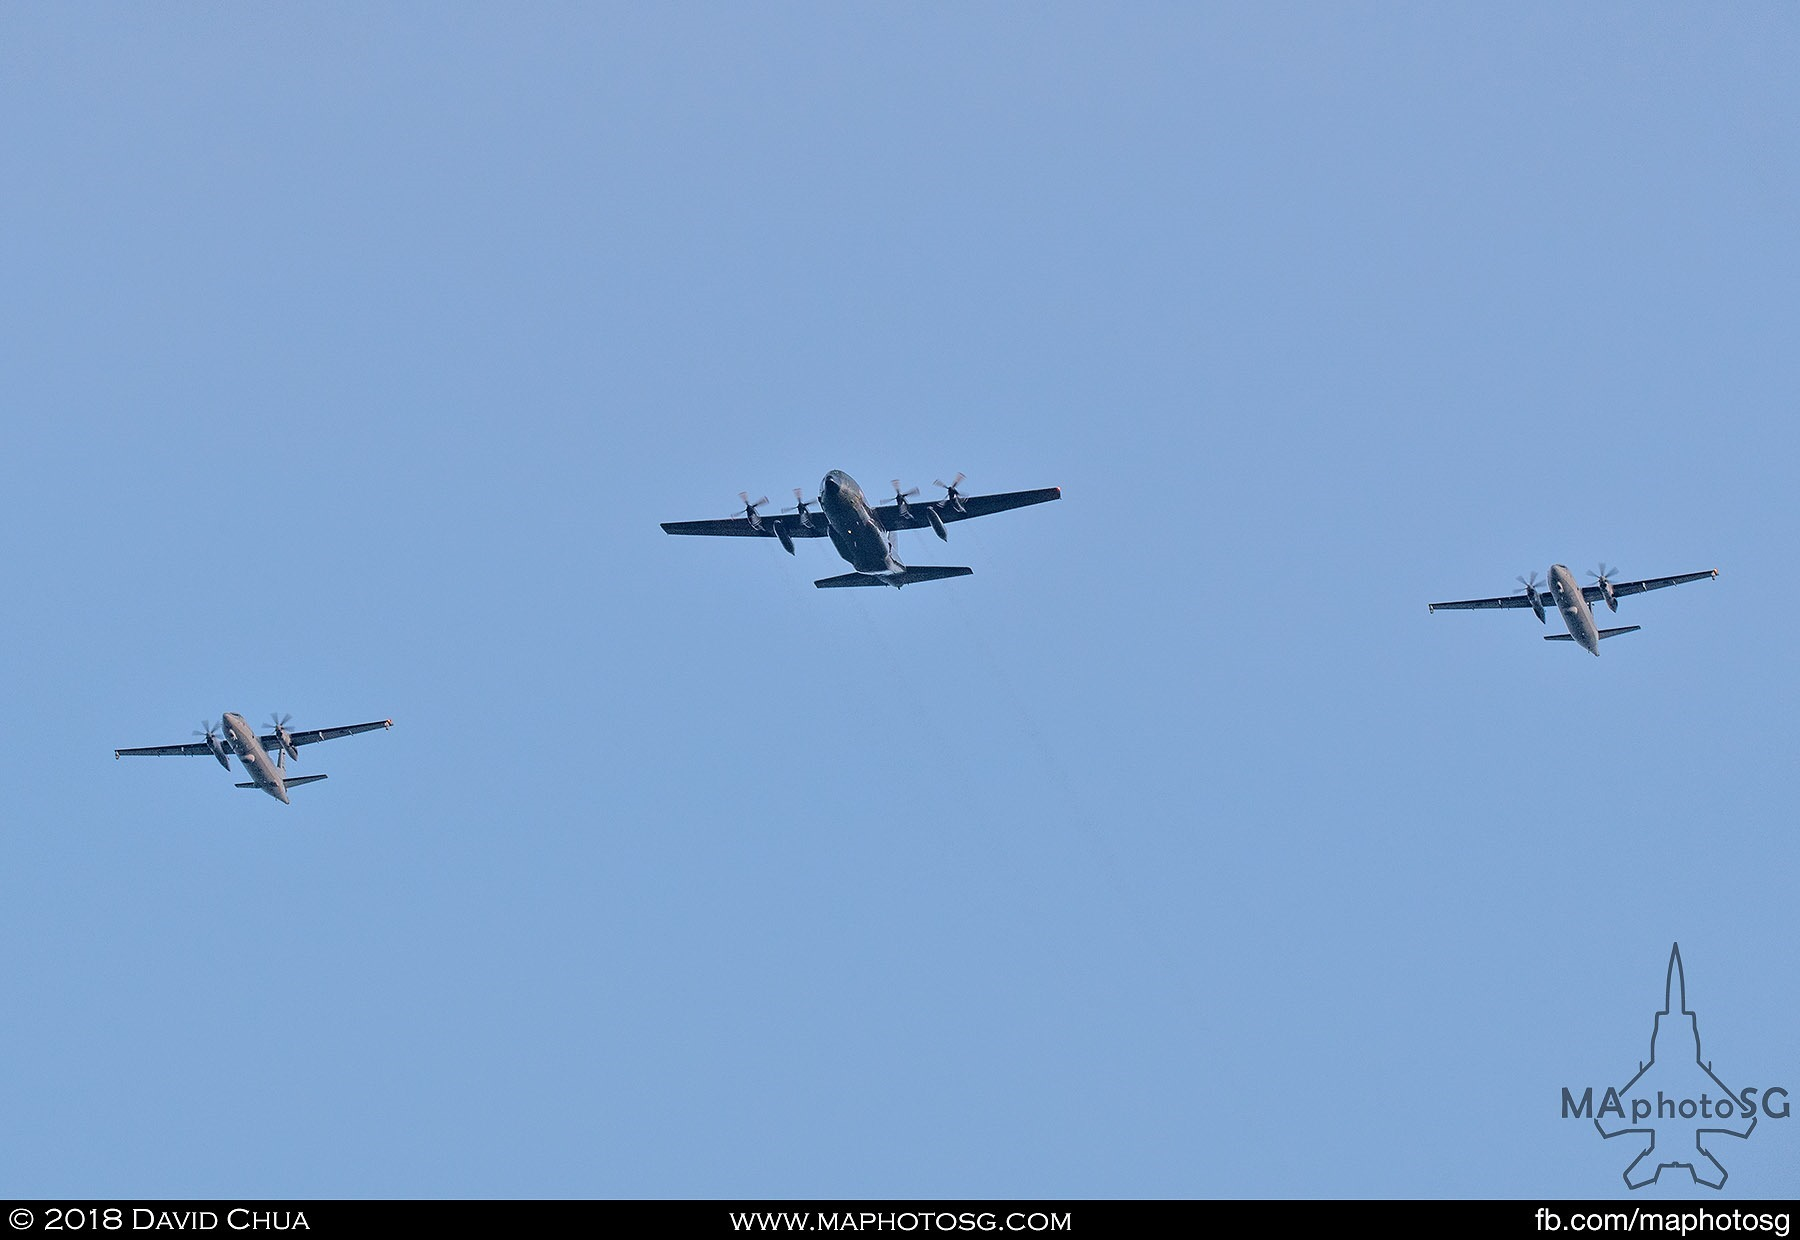 Transport Formation of a C-130H Hercules flanked by 2 Fokker 50 MPAs